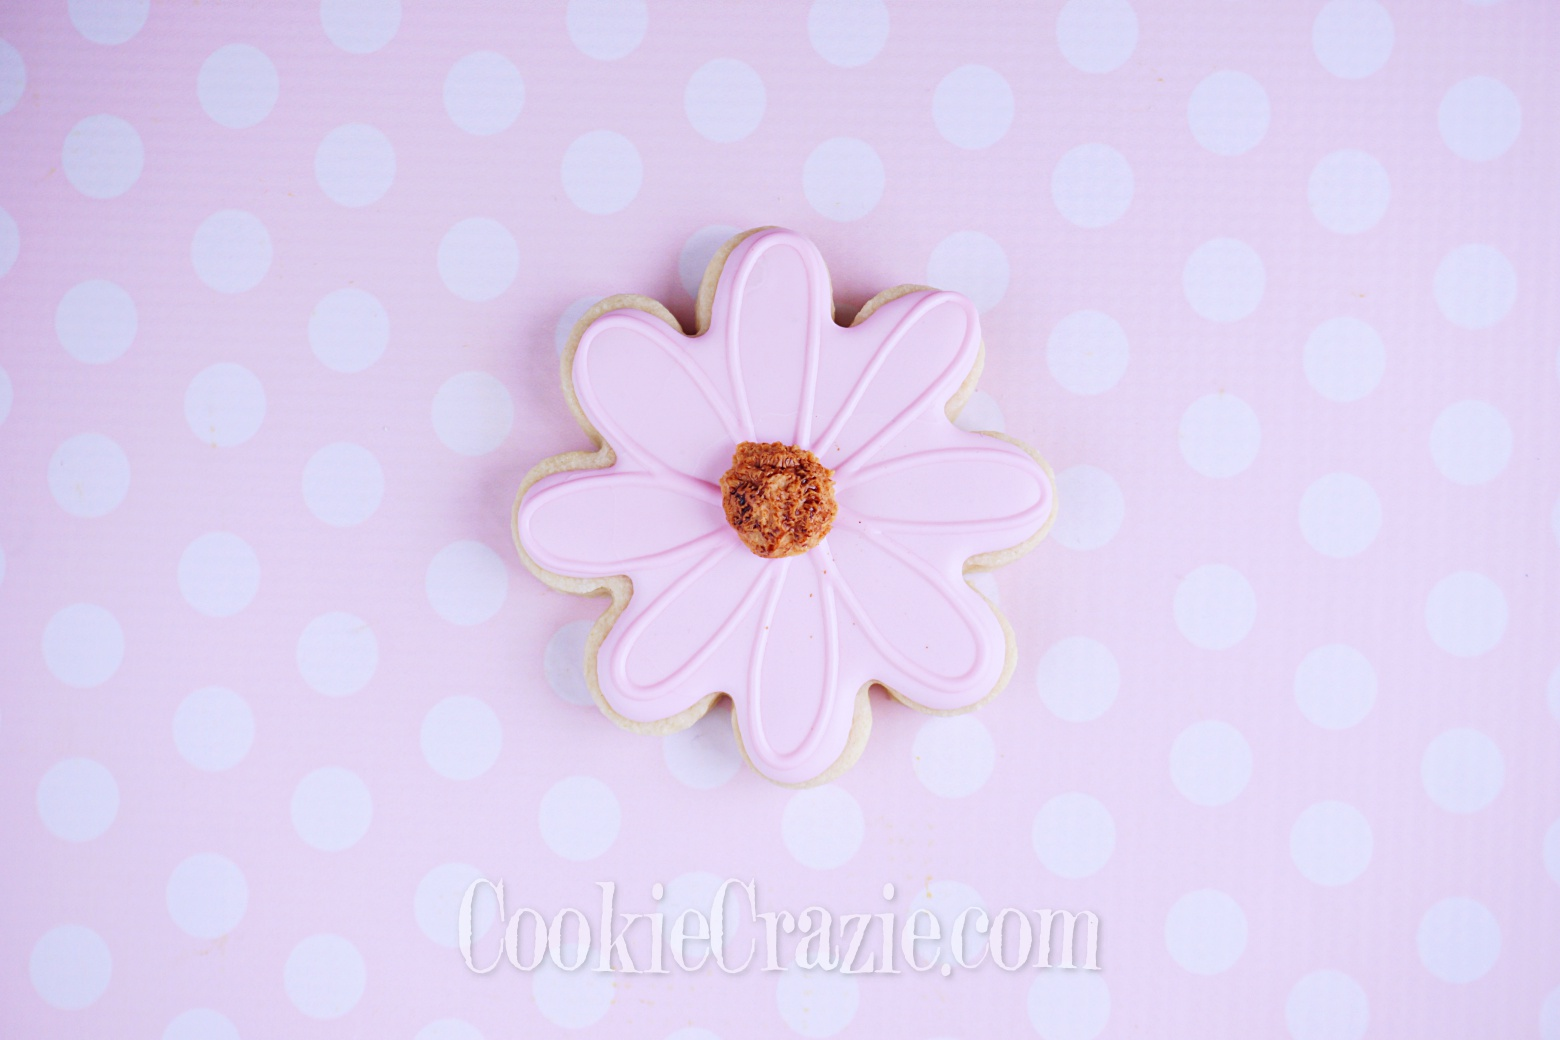 Pink Flower Decorated Sugar Cookie YouTube video  HERE